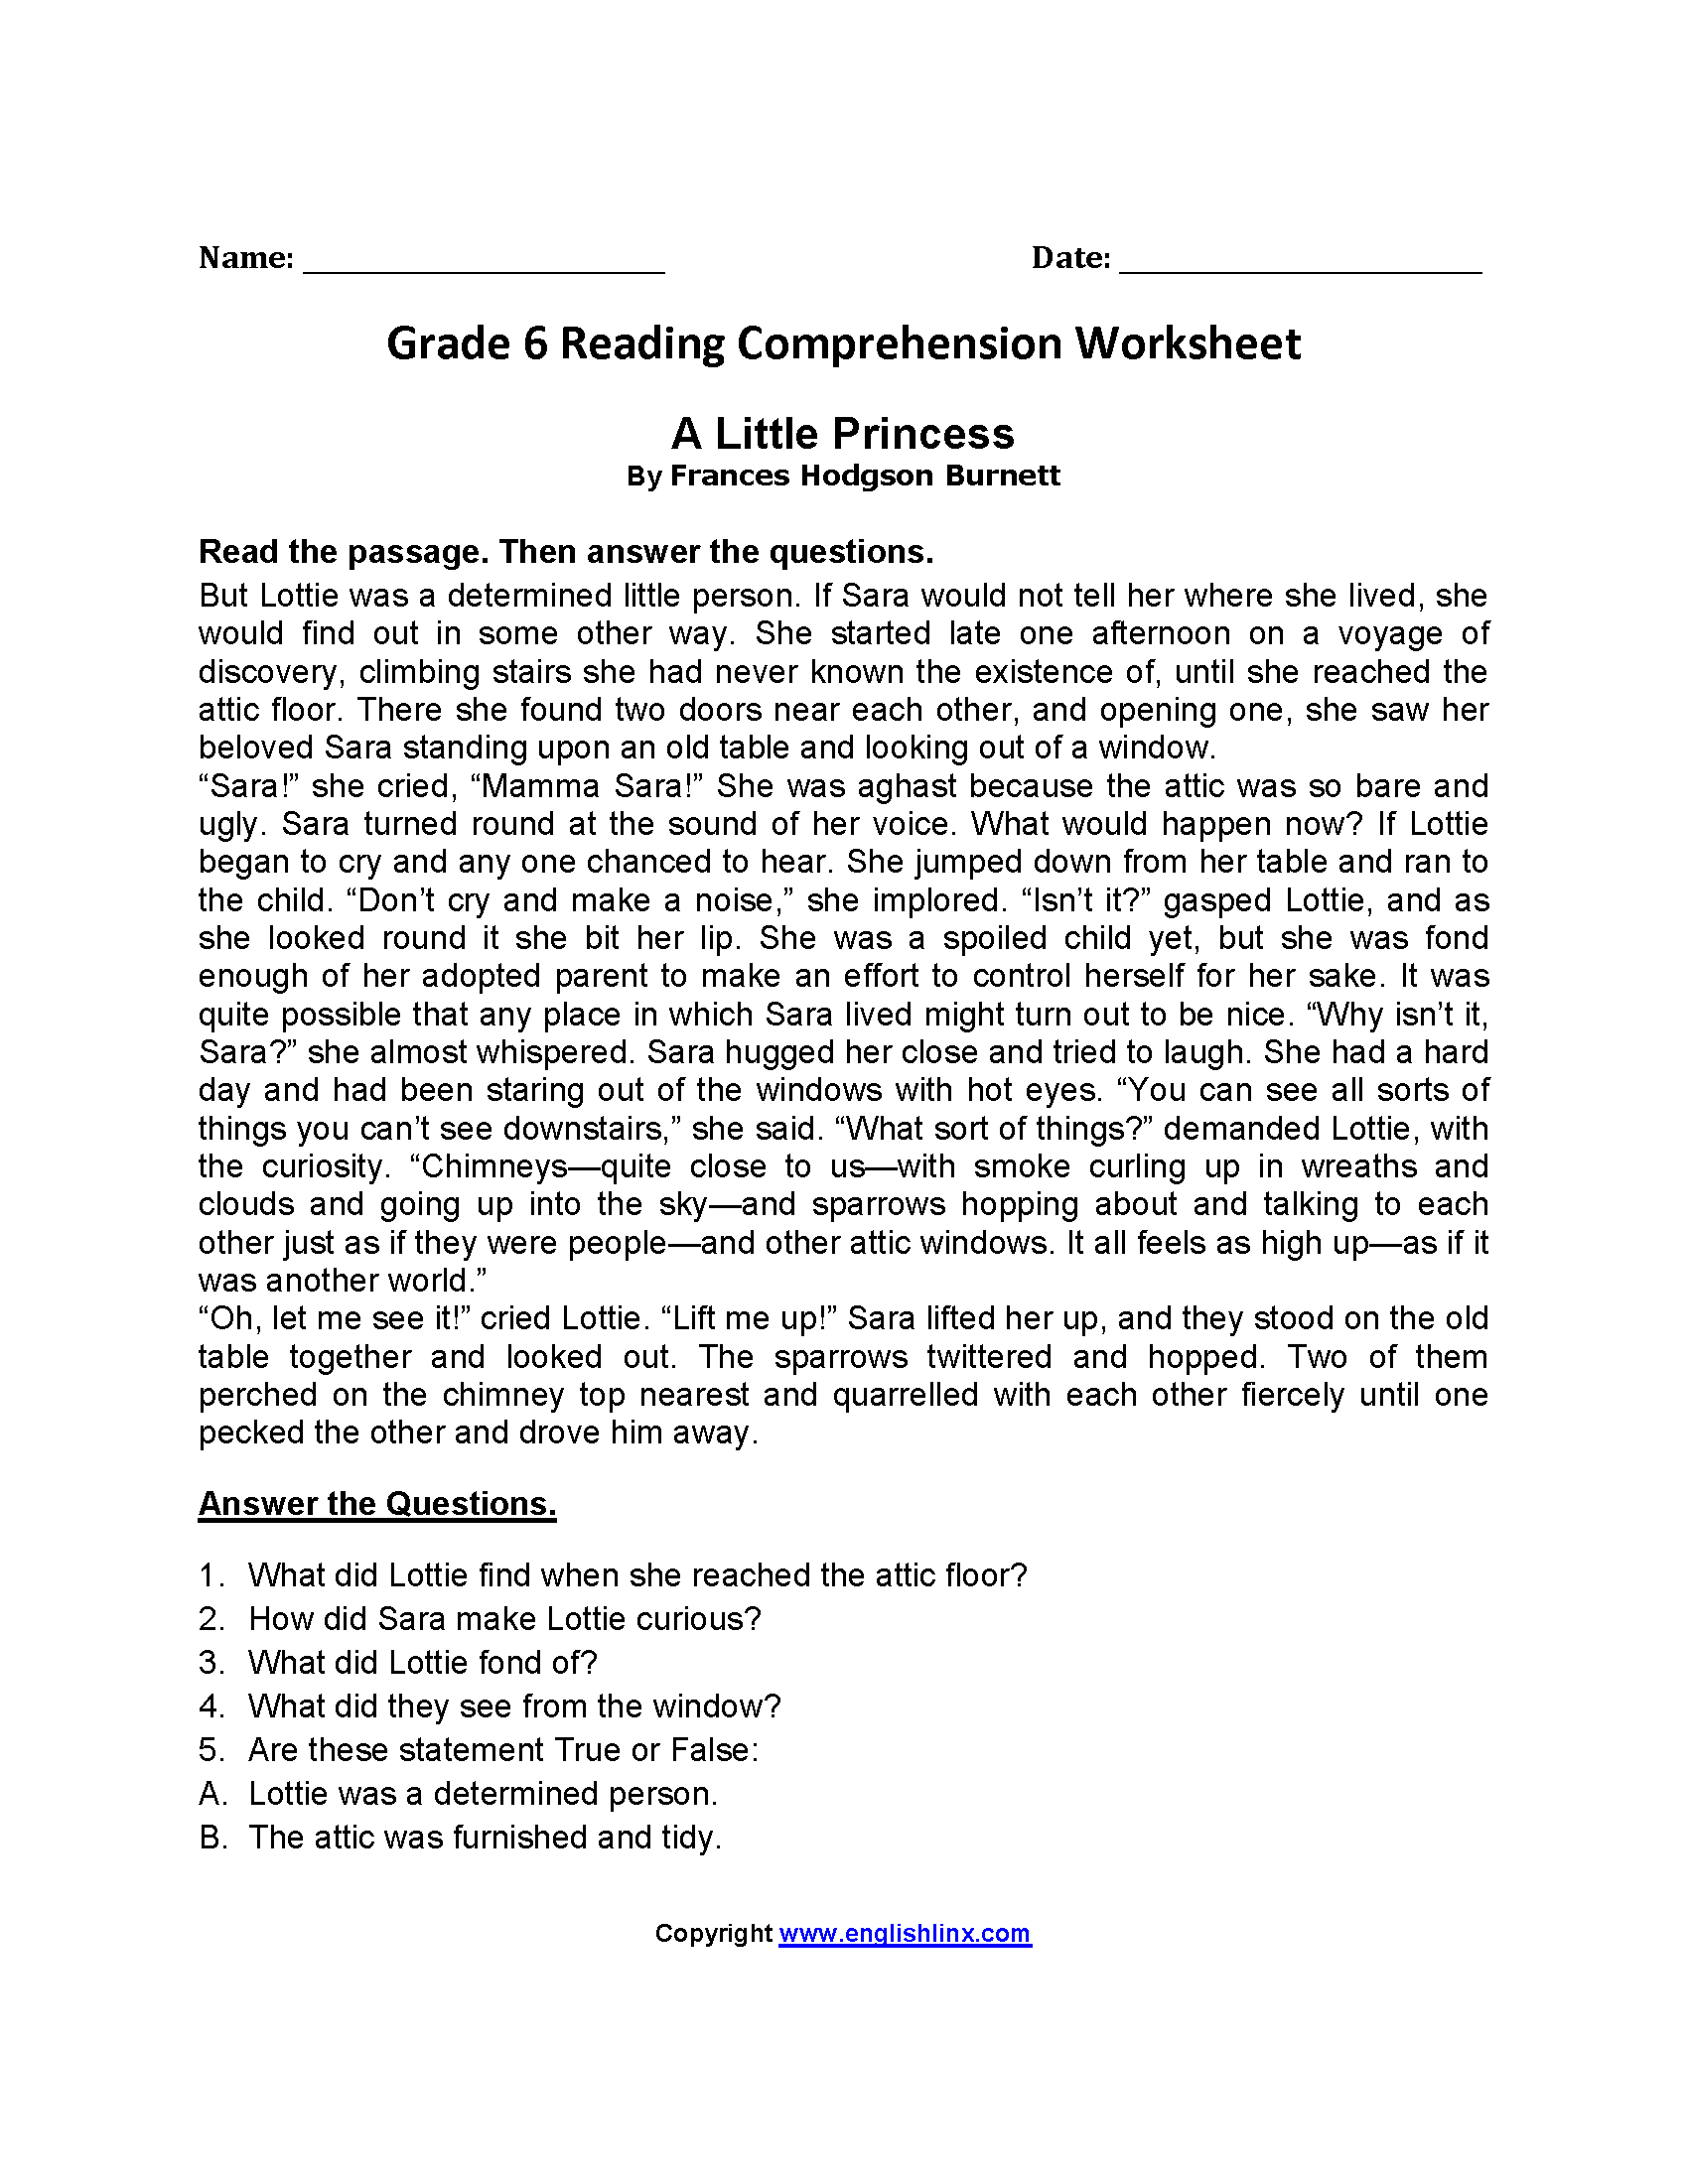 Worksheet Comprehension For Grade 5 grade 5 reading comprehension worksheets templates and have fun teaching